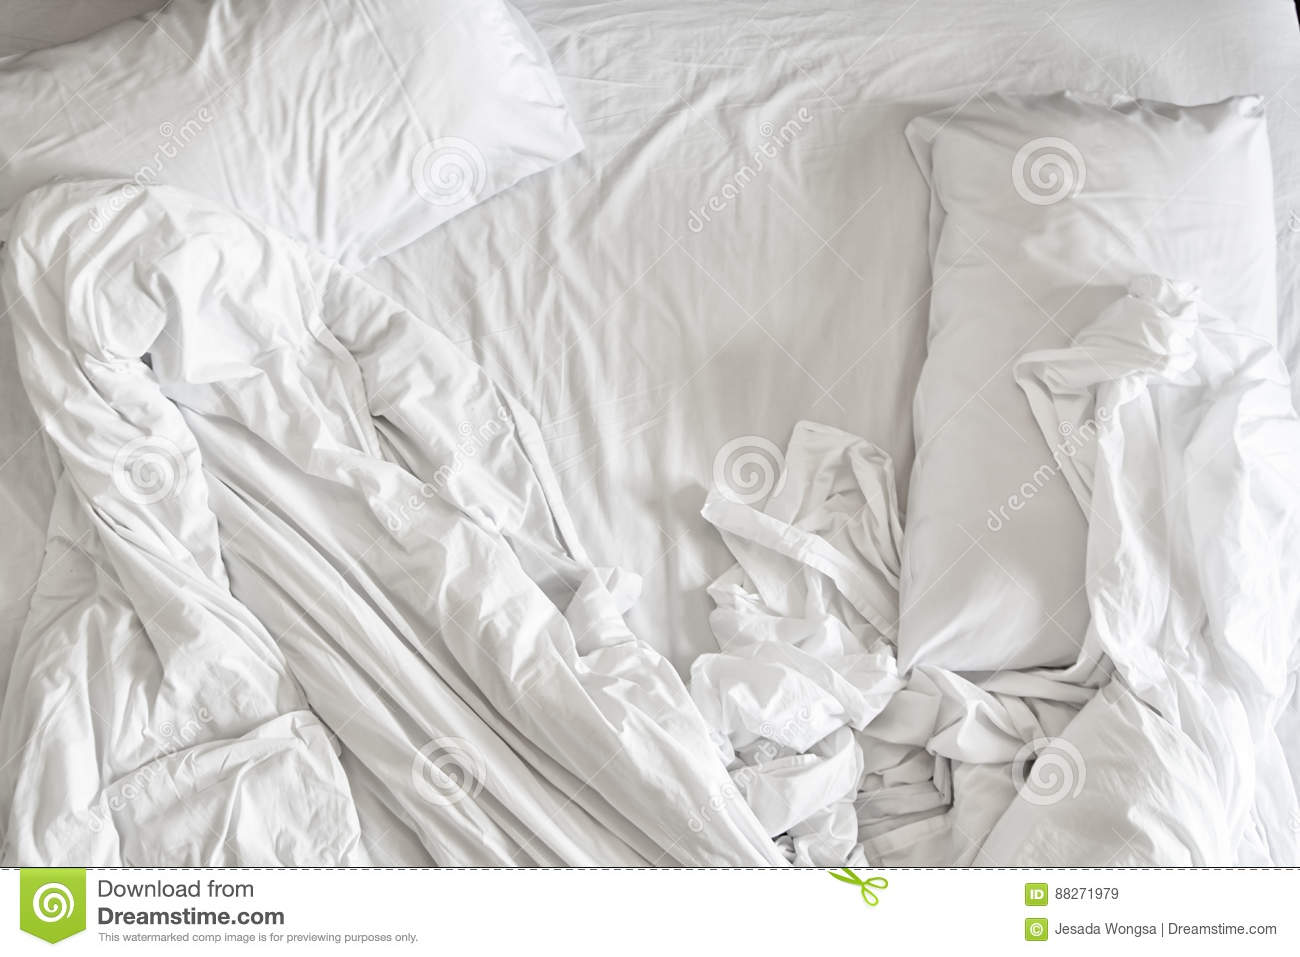 White bed sheets texture - Top View Of White Bedding Sheets And Pillow White Fabric Wrinkled Texture